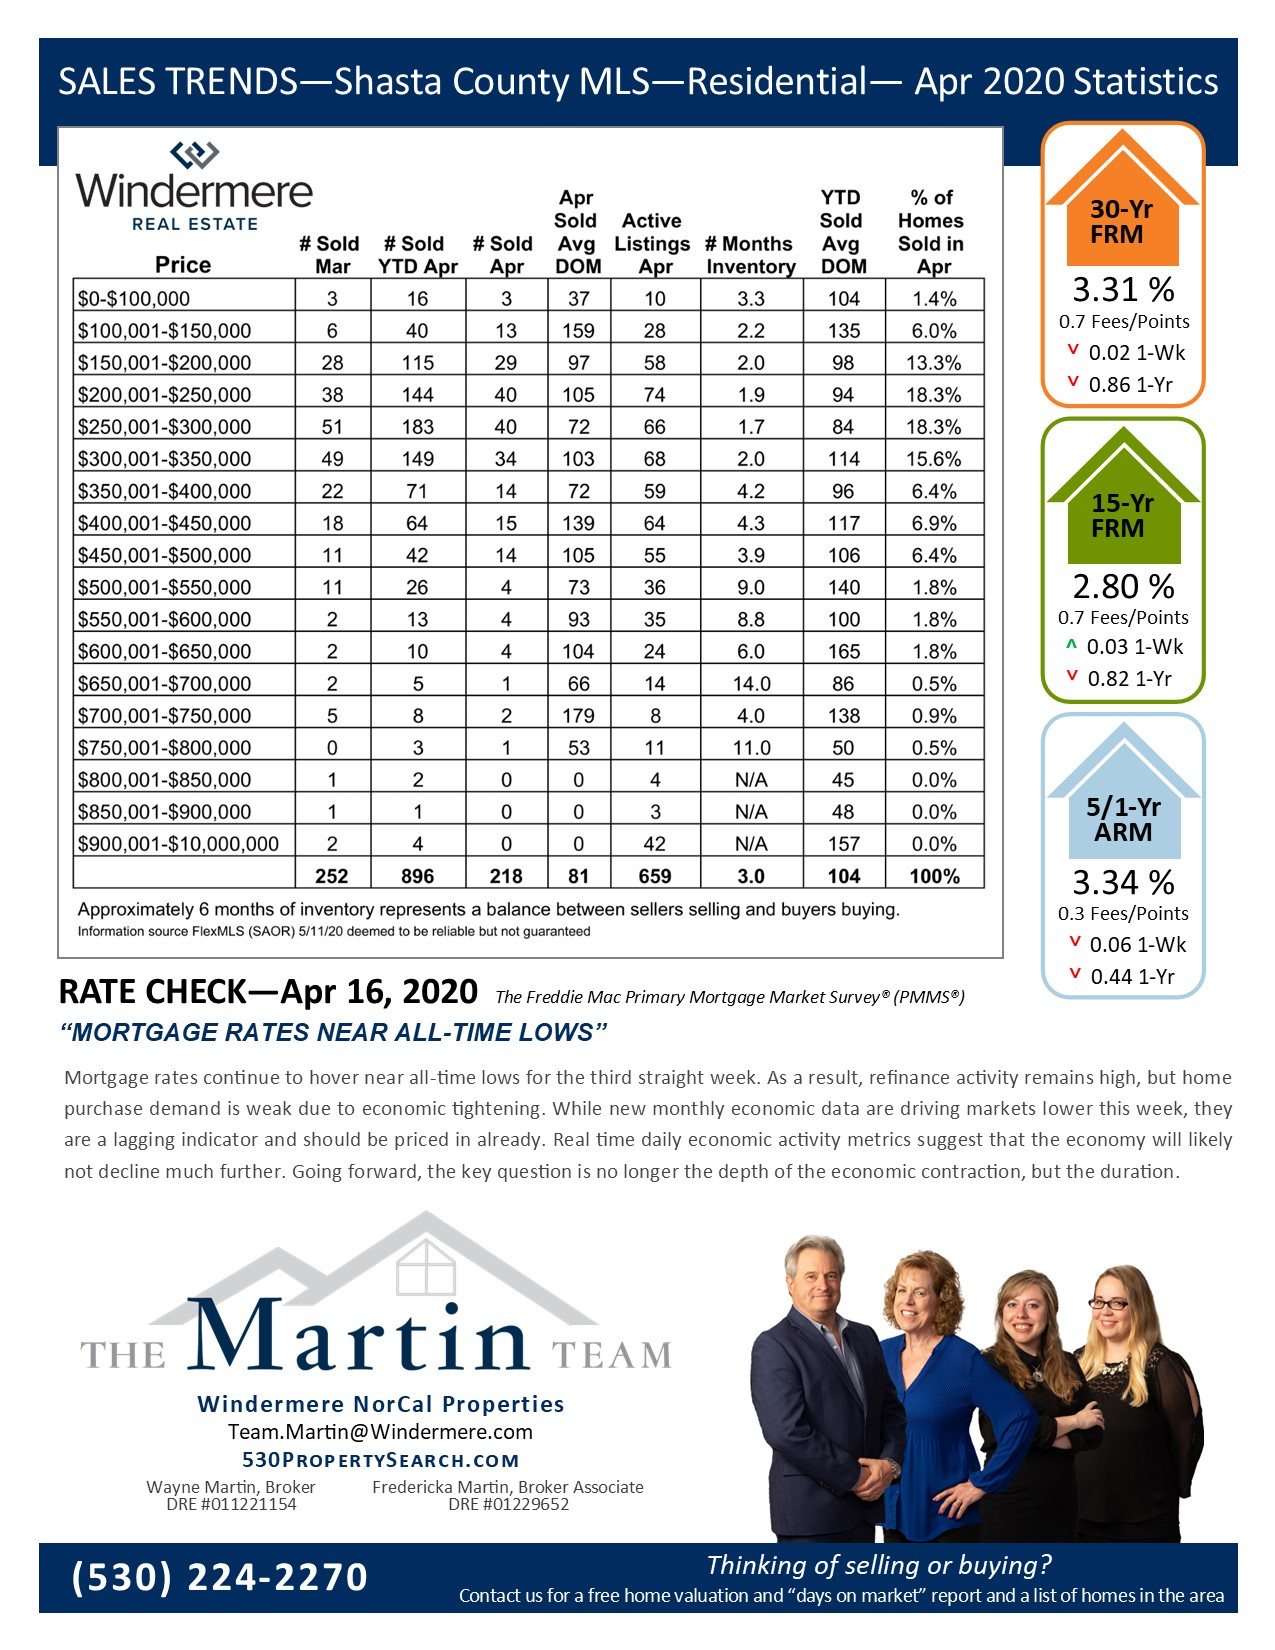 Sales Trends Reports Apr 2020. Mortgage rates and statistics on residential sales for Apr 2020.